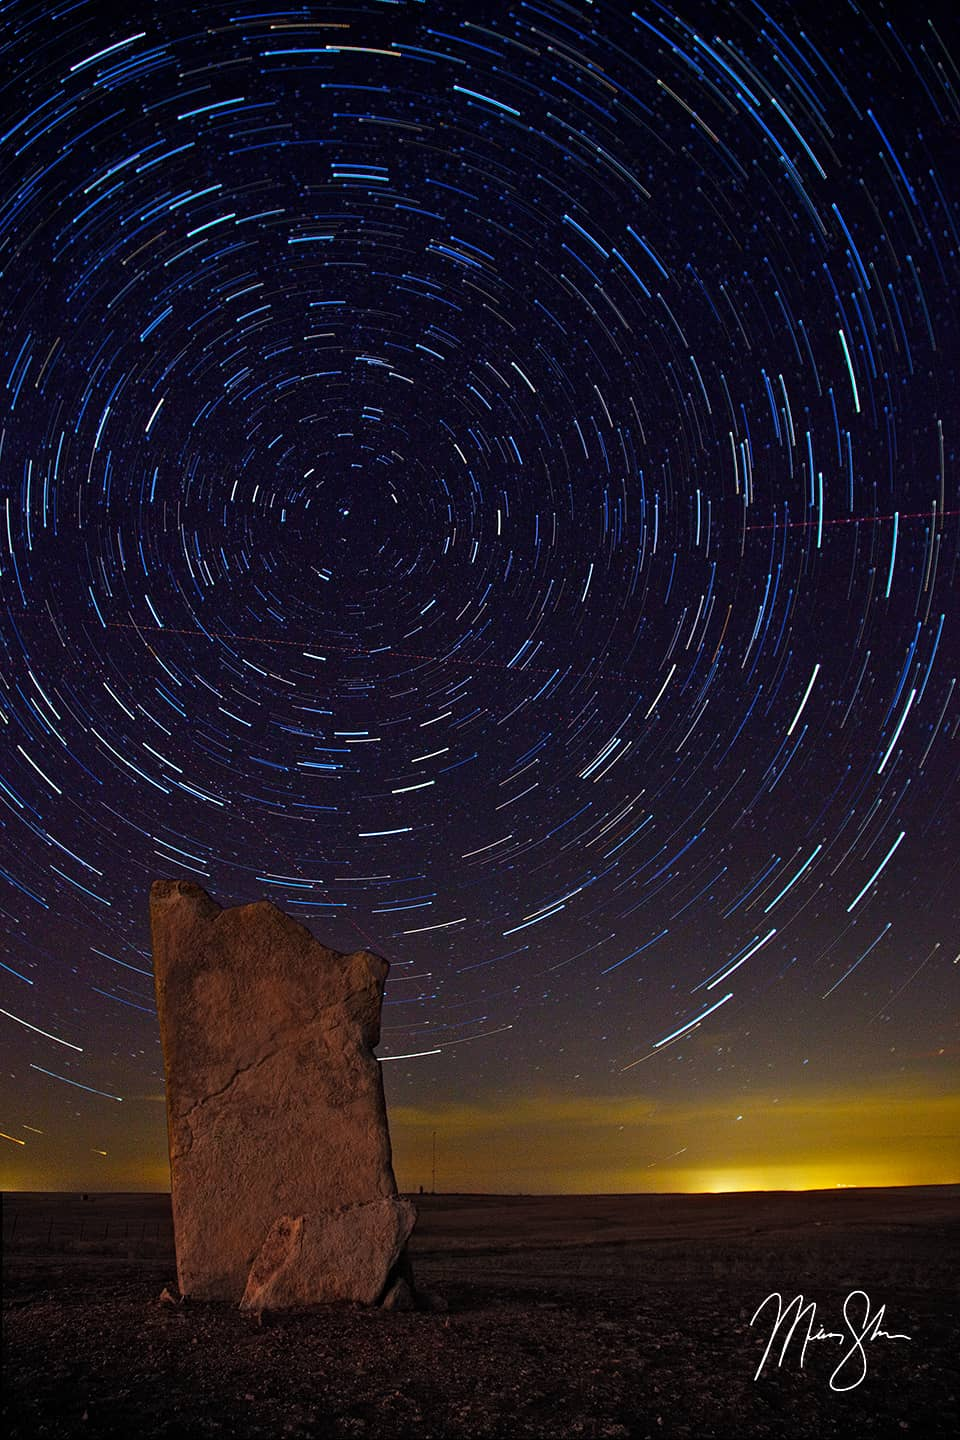 Star Trails Over Teter Rock - Teter Rock, Flint Hills near Cassoday, Kansas